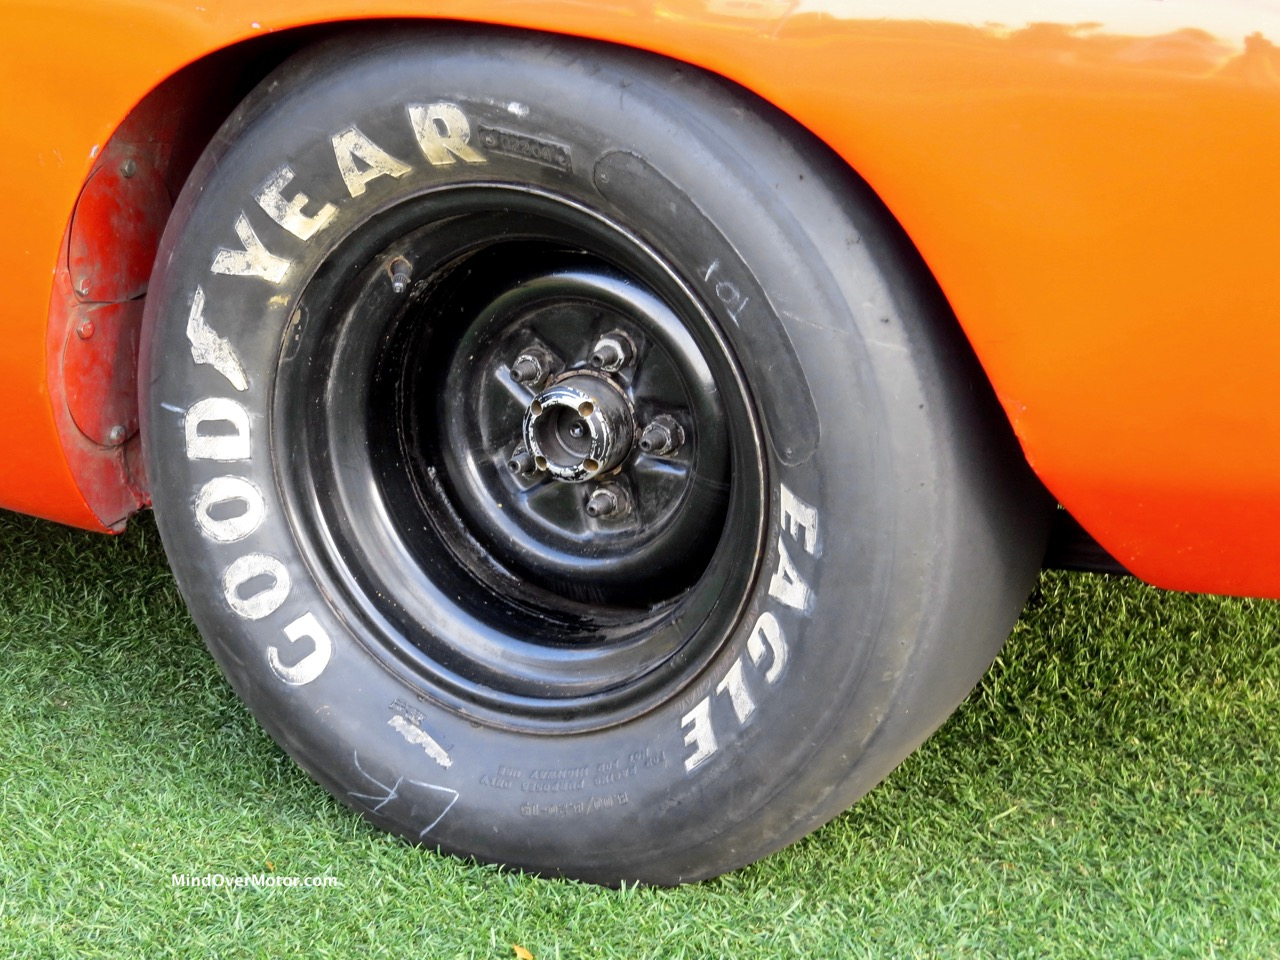 1969 Charger Daytona Wheel